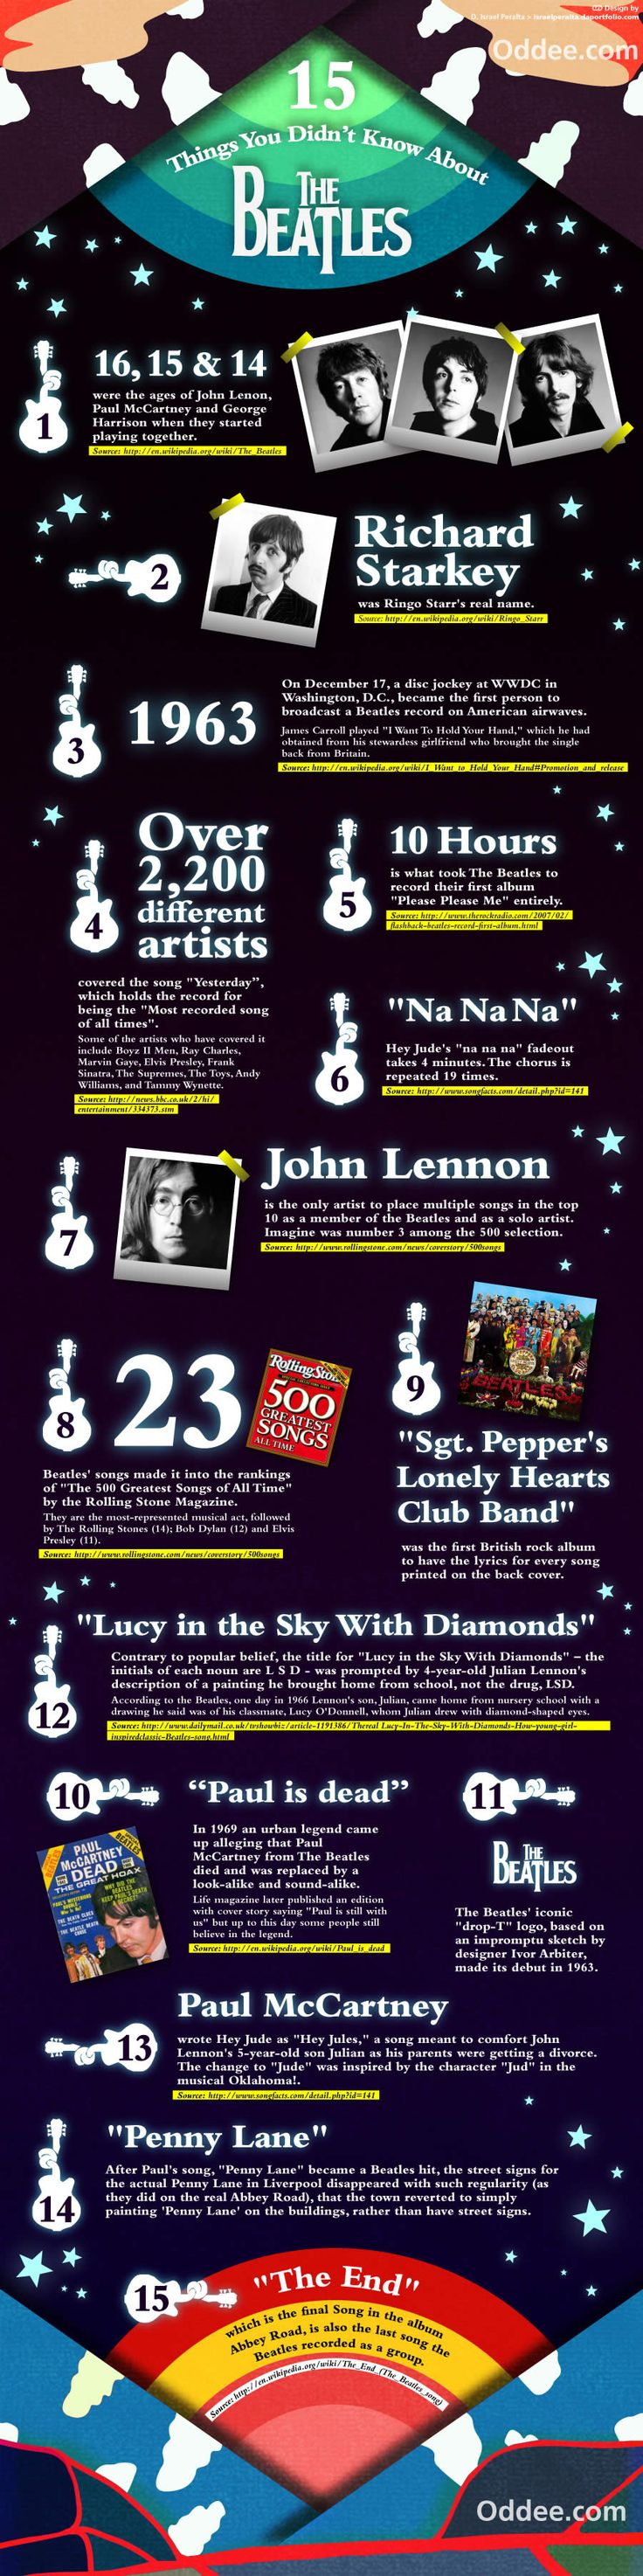 this is a very good info graphic about the beatles but i feel like i want to create something a little more simplistc and astheically 60s.